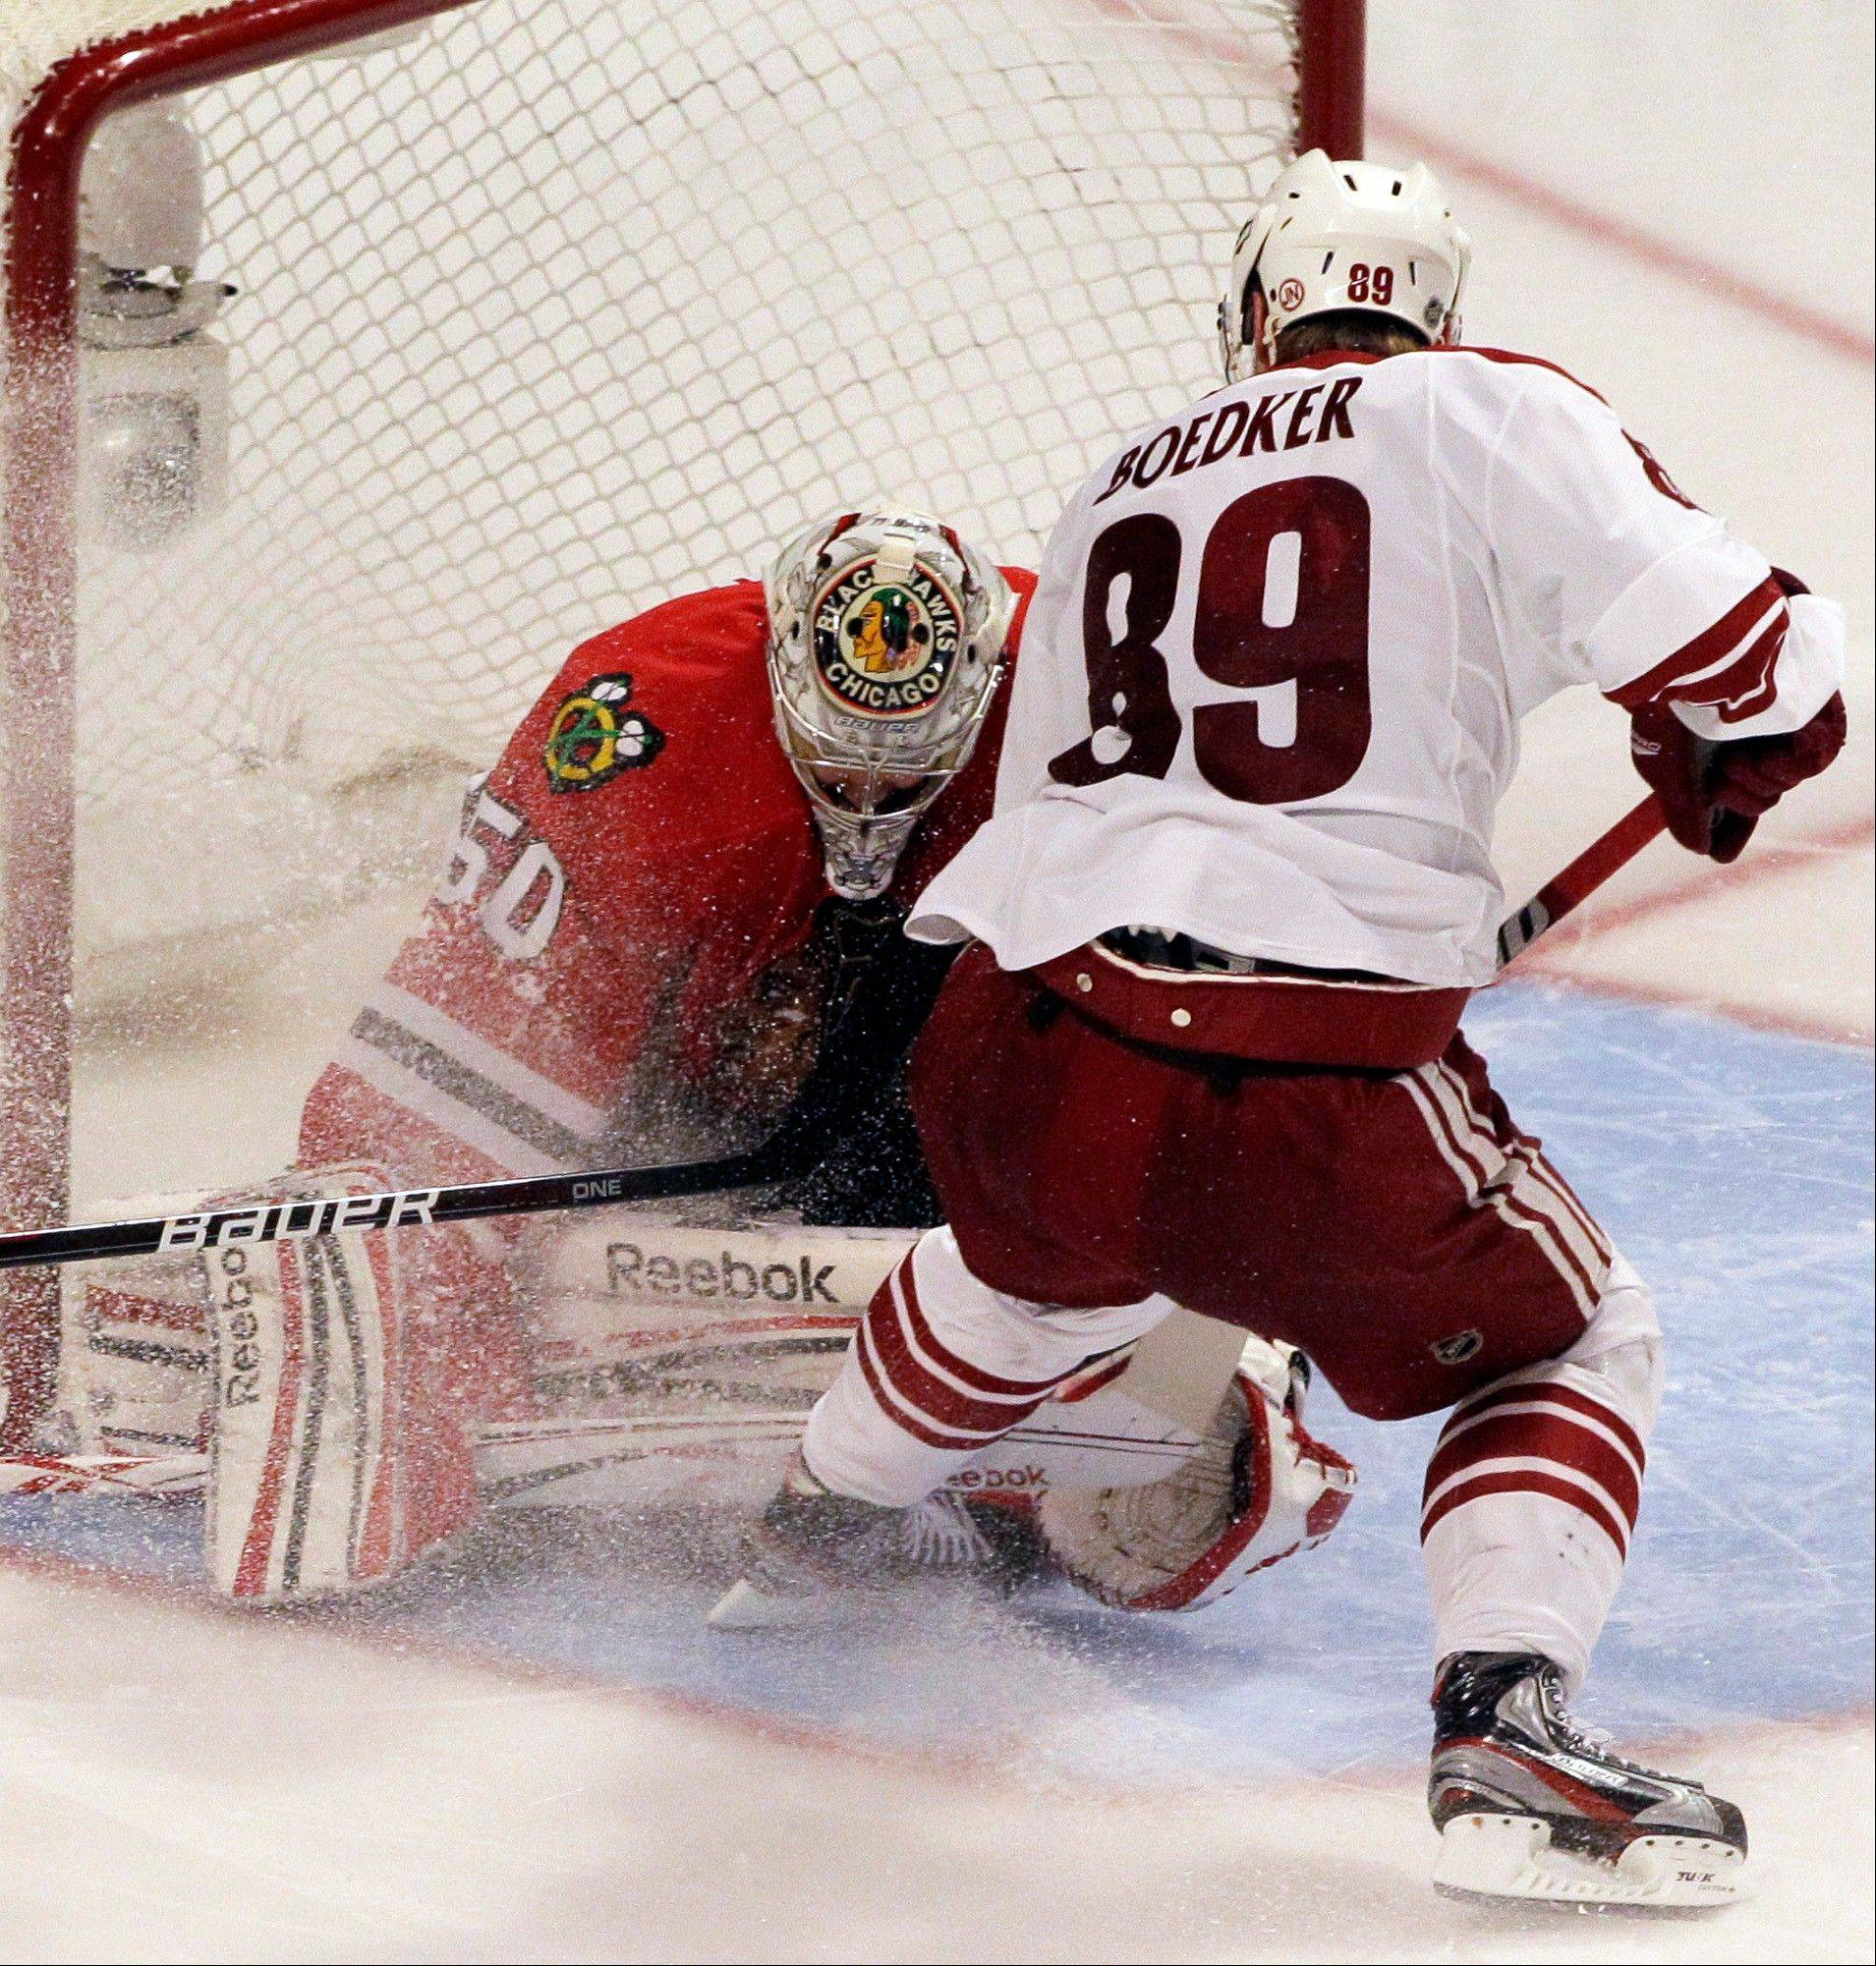 Mikkel Boedker scores a game-winning goal against Blackhawks goalie Corey Crawford in overtime of their Game 4 match in the NHL first-round playoffs last April. Boediker also scored in overtime in Game 3 of the series.